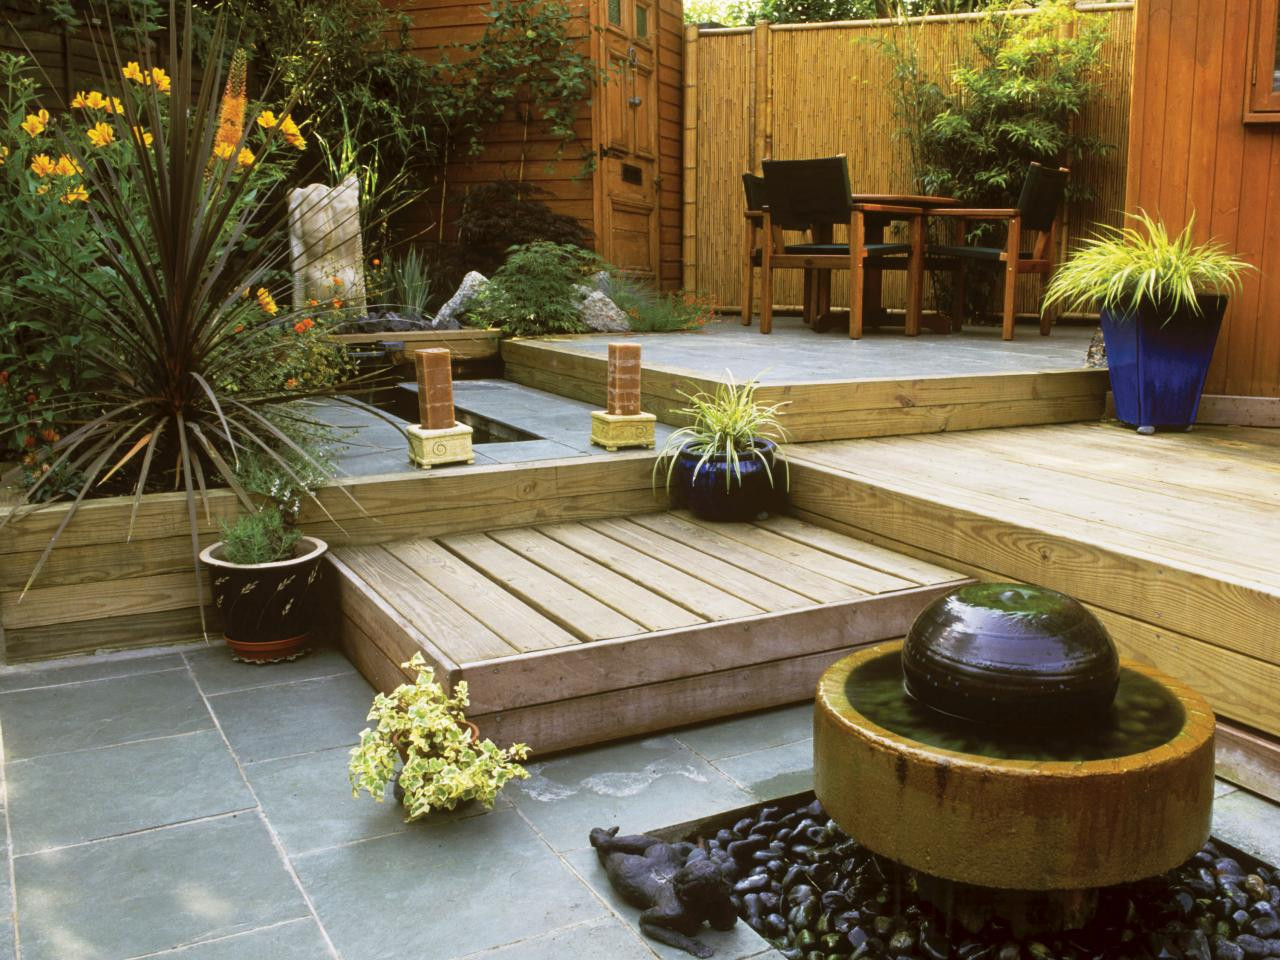 Best ideas about Small Backyard Patio Ideas . Save or Pin Small Backyard Ideas with or without Grass Traba Homes Now.